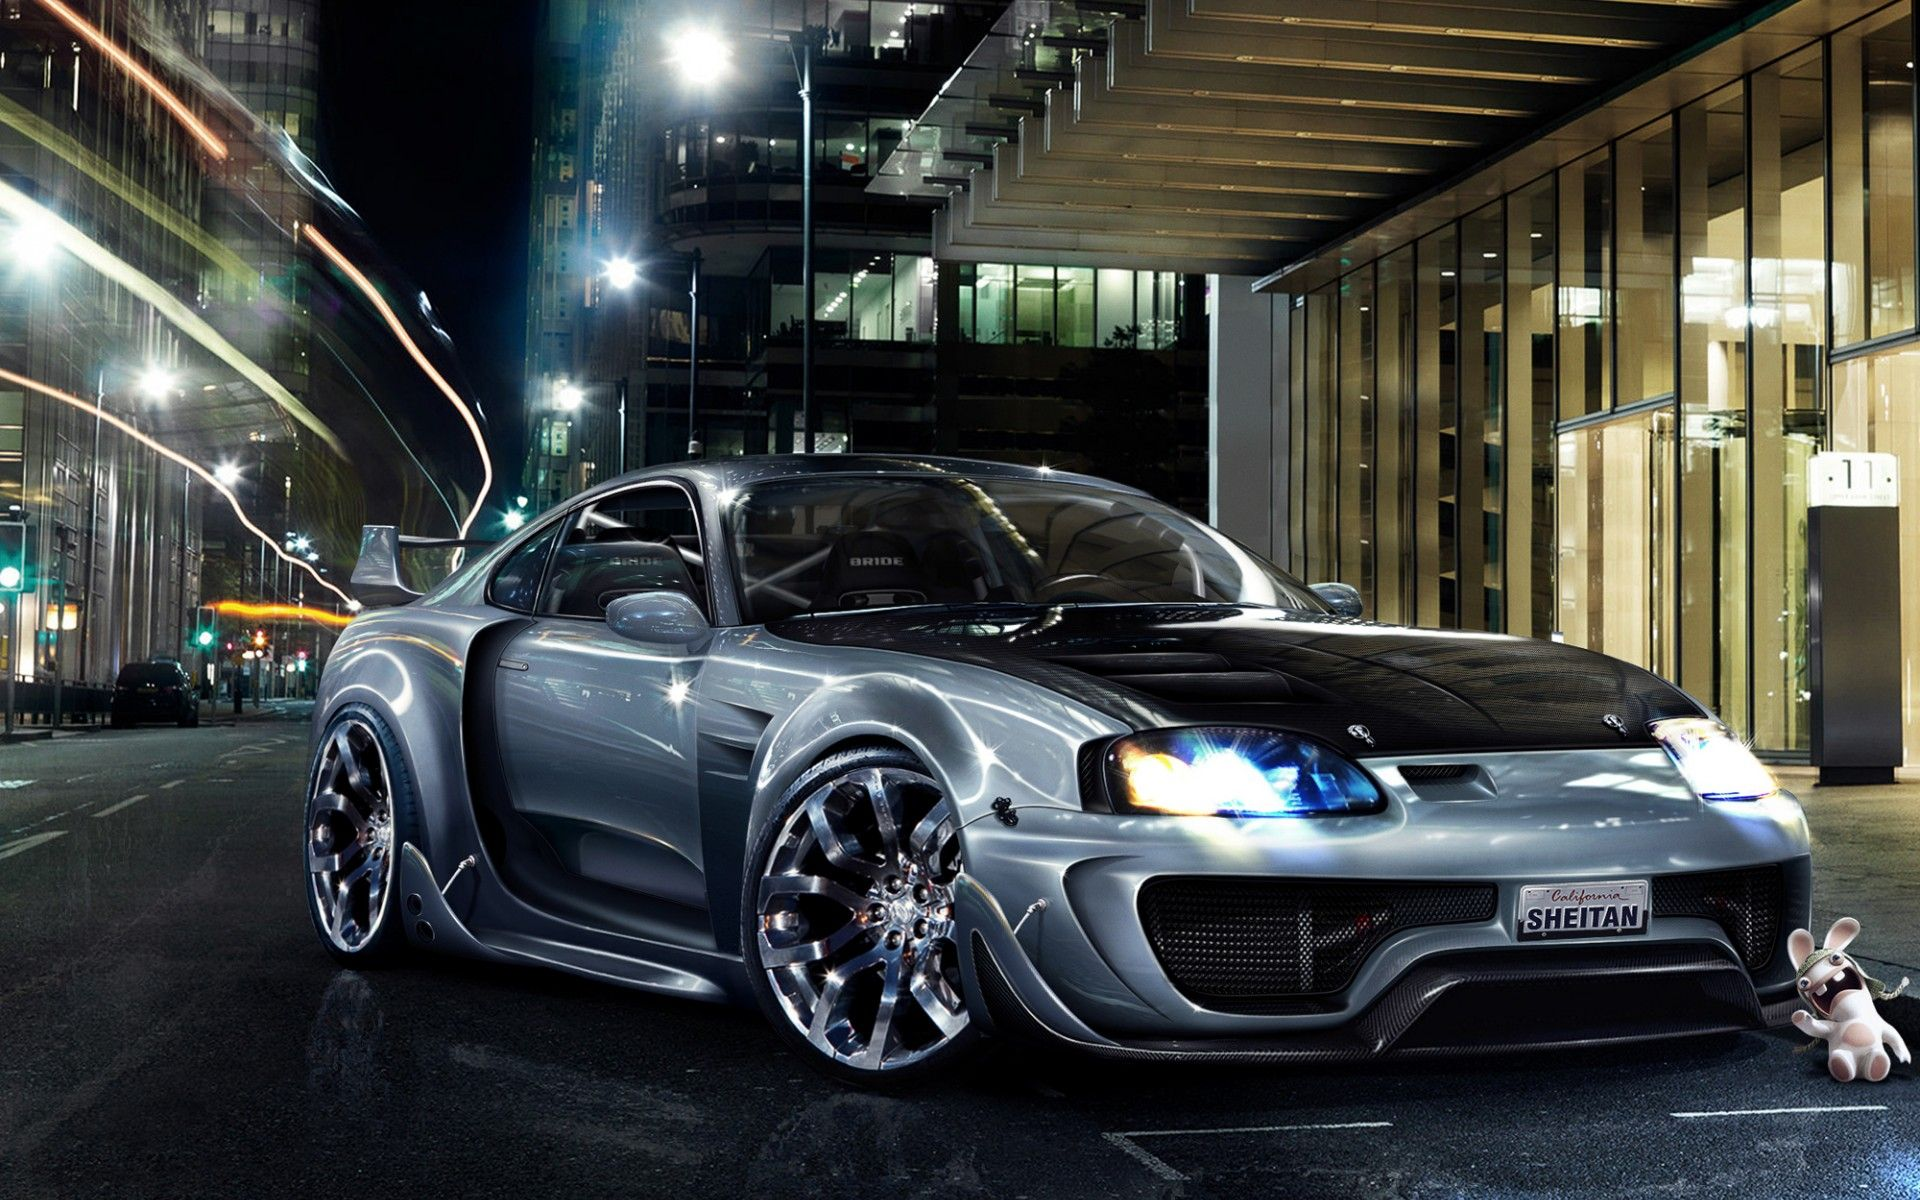 New Toyota Sports Cars Wallpaper In 2020 Car Wallpapers Pictures Of Sports Cars Expensive Sports Cars